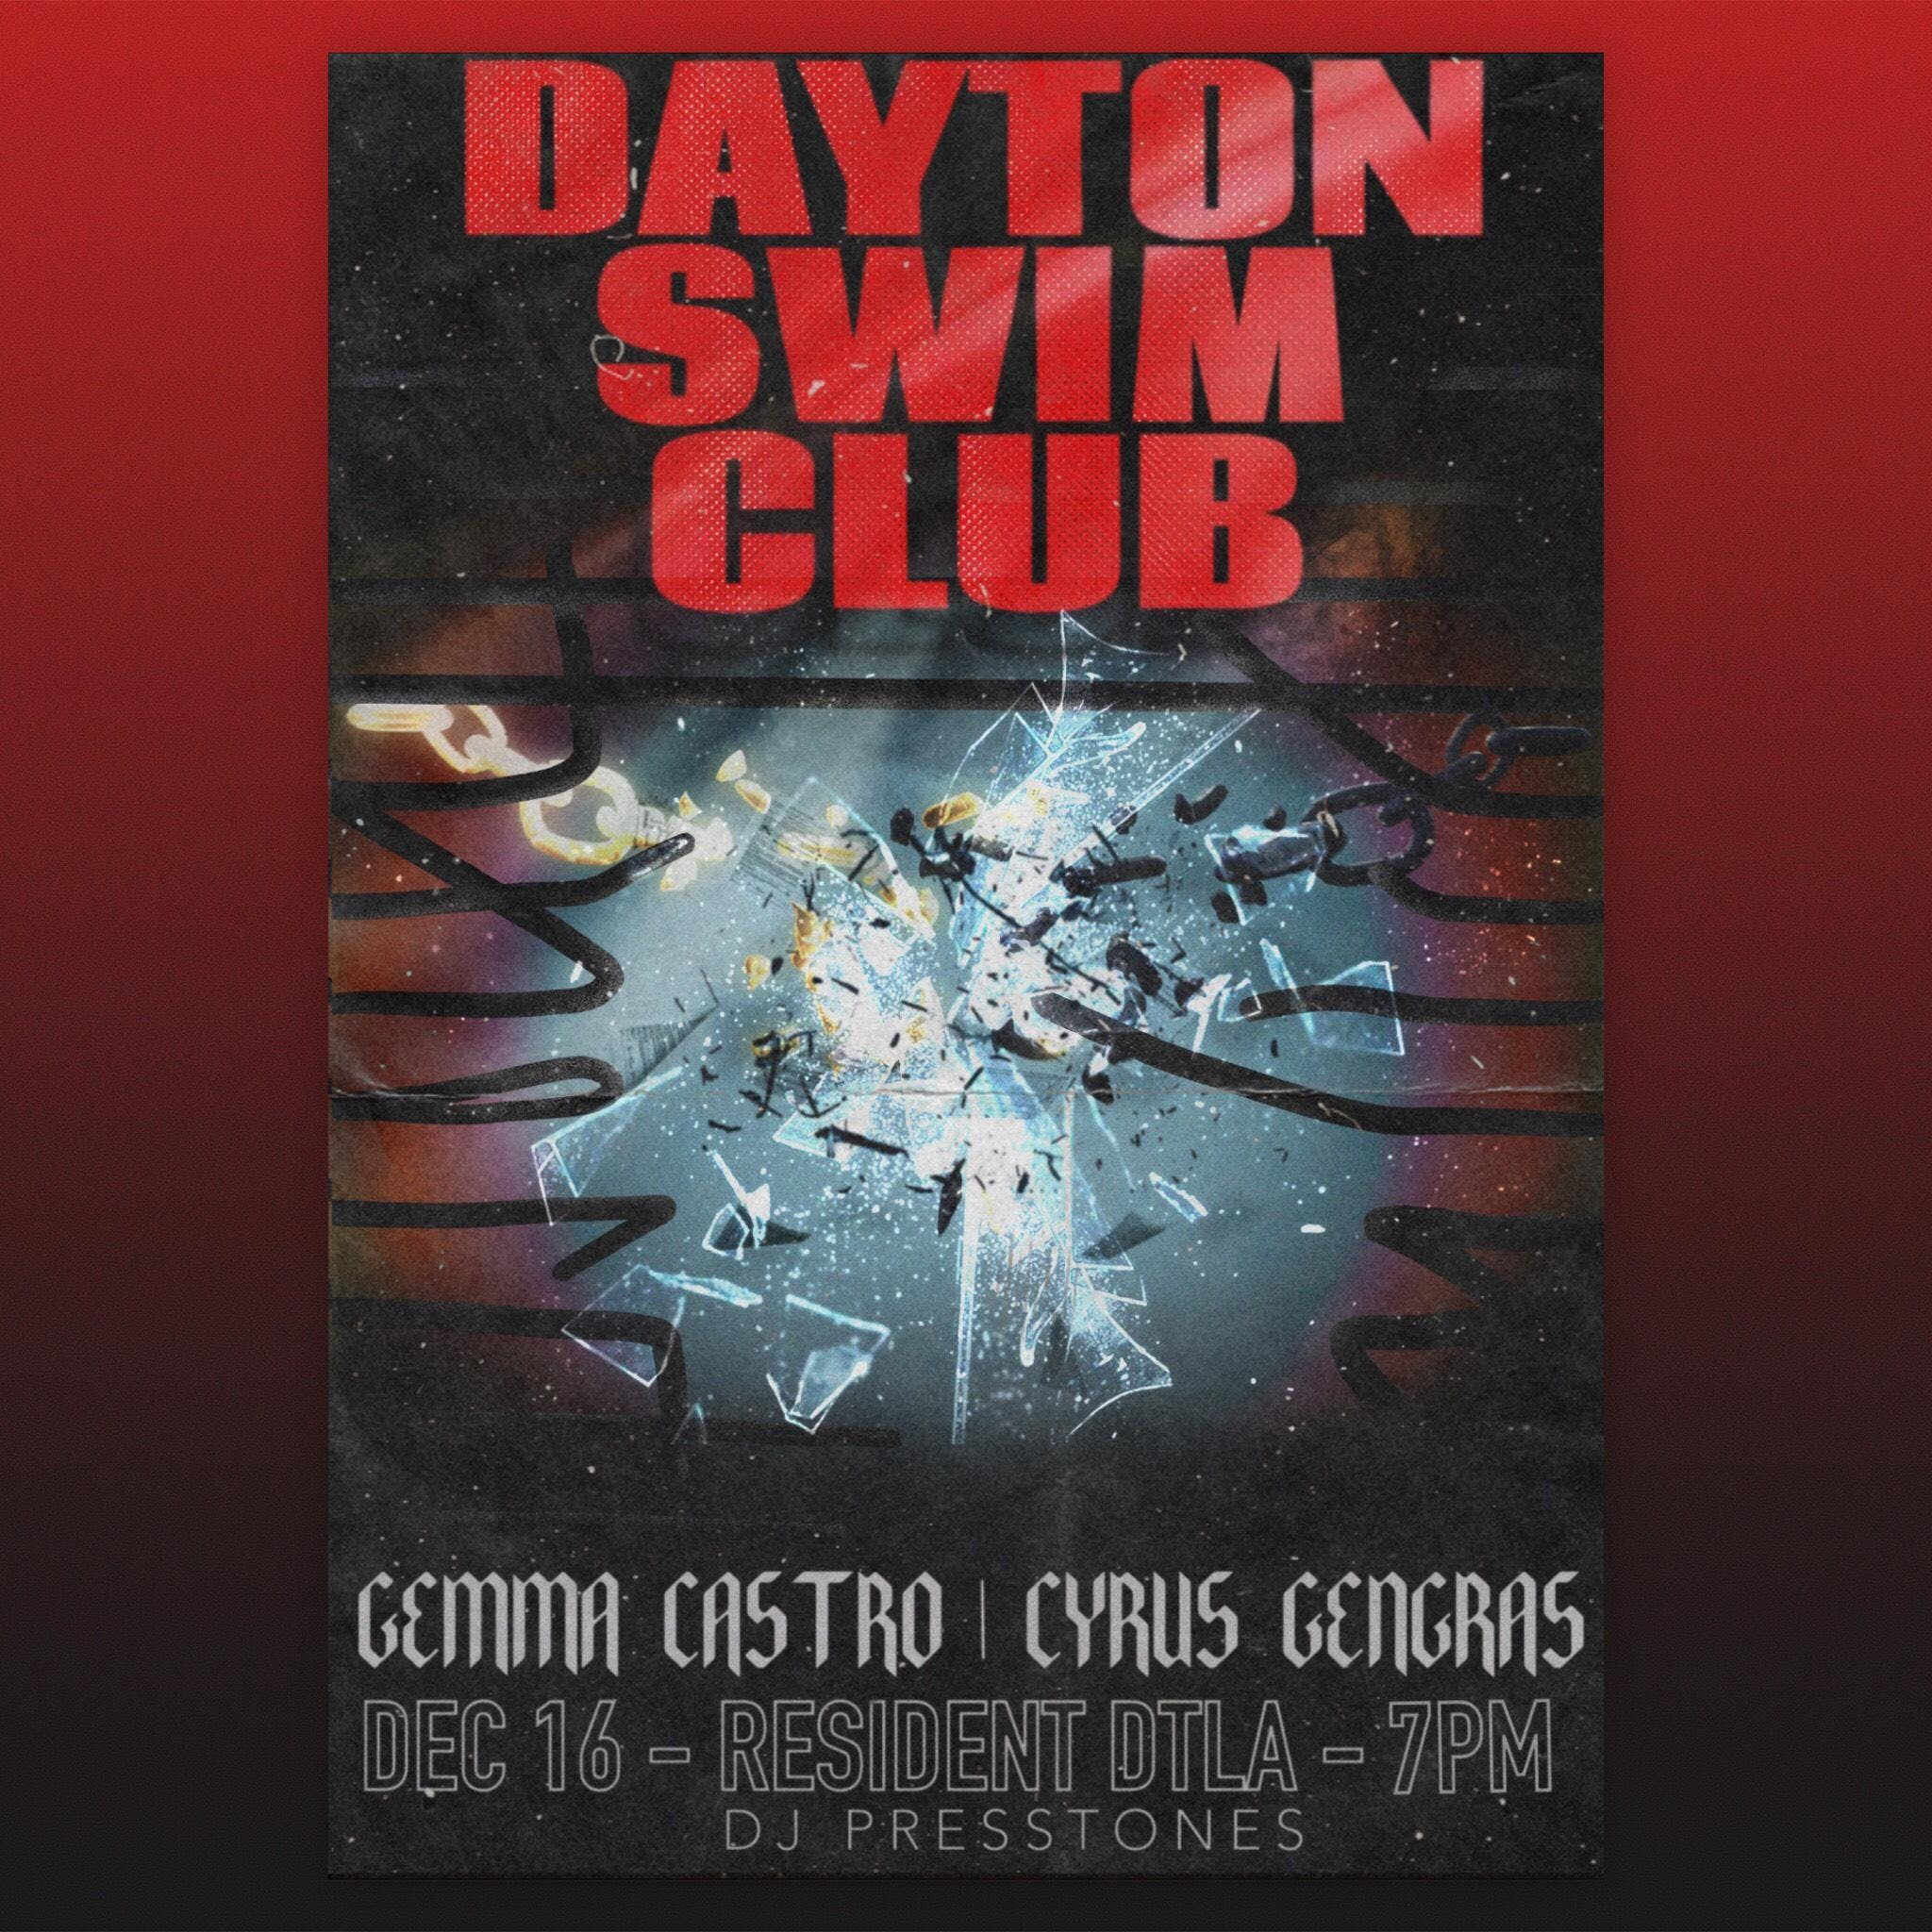 Dayton Swim Club, Gemma Castro and Cyrus Gengras